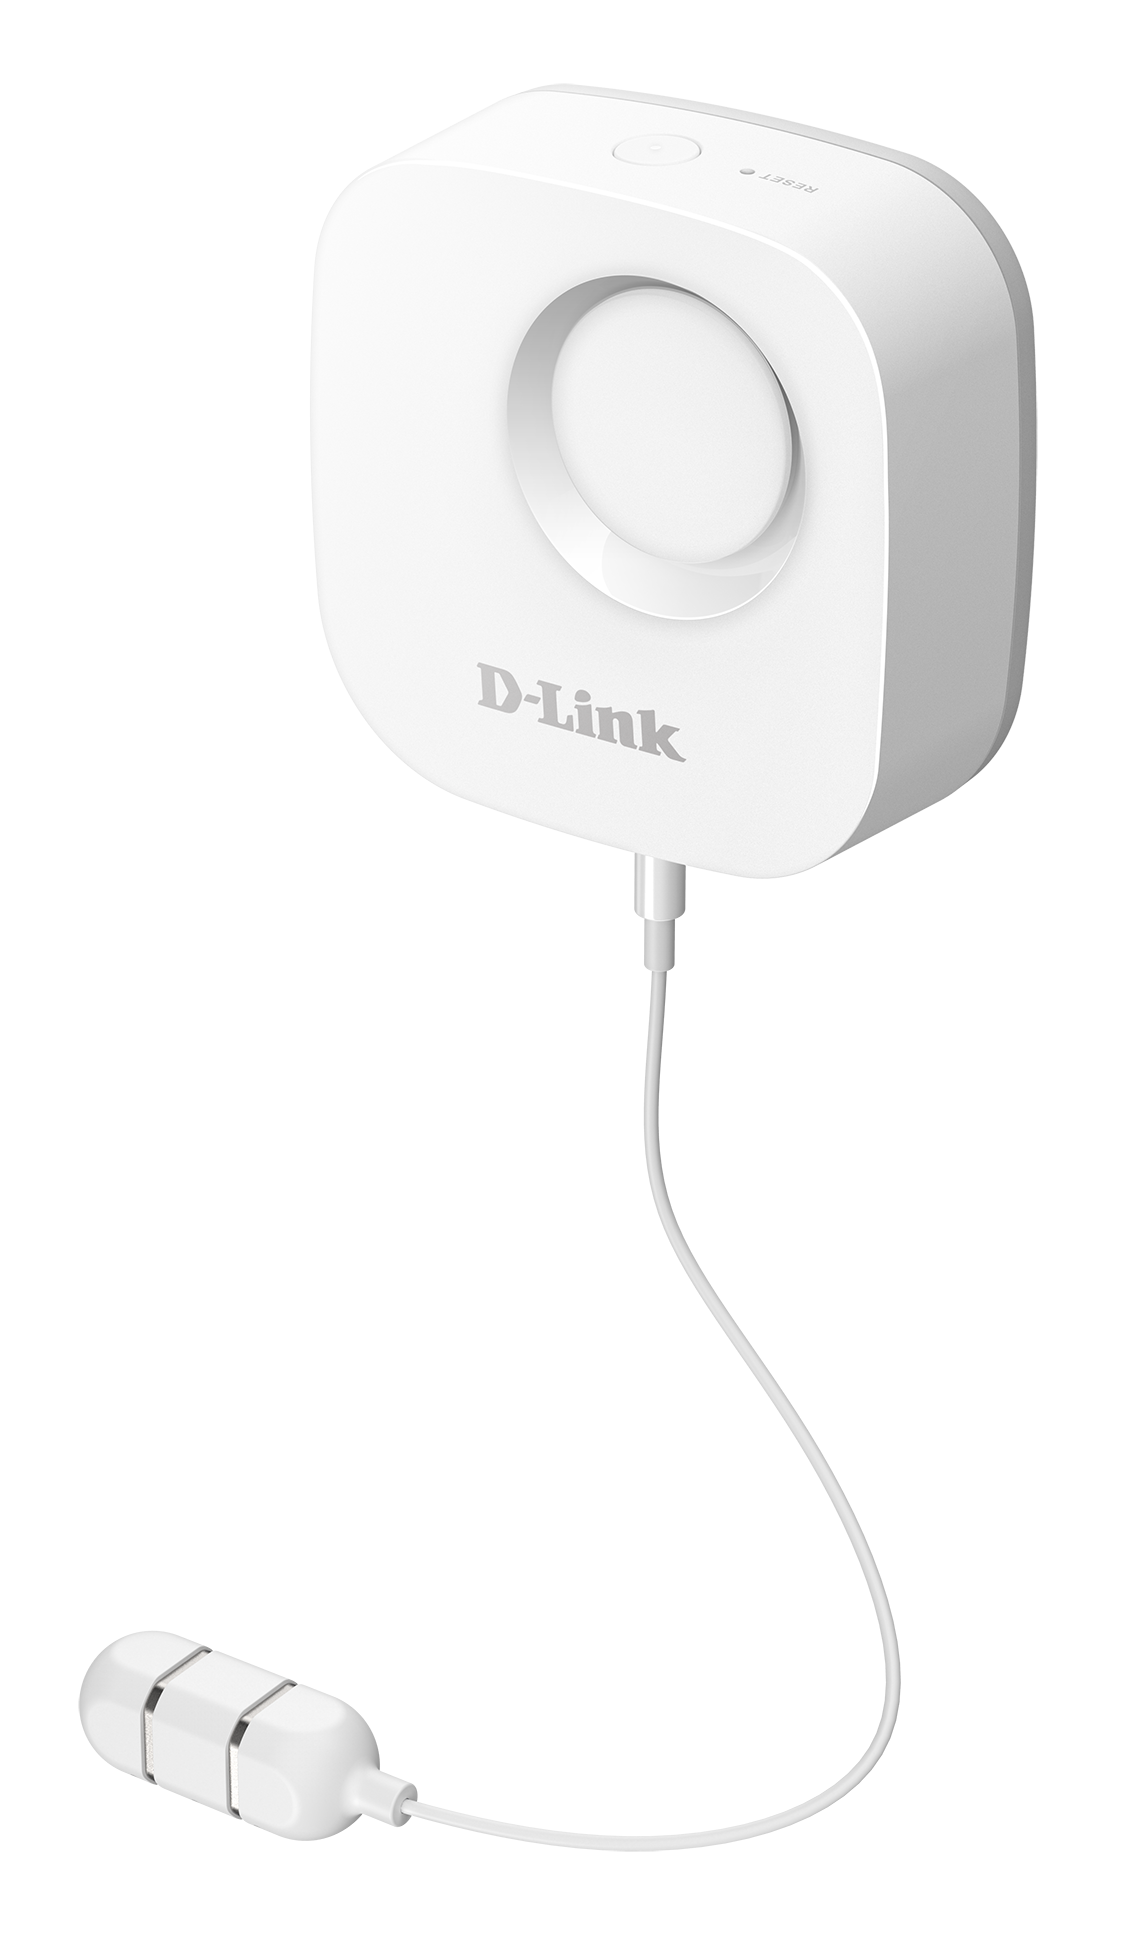 DCH-161 Wi-Fi Water Leak Sensor left